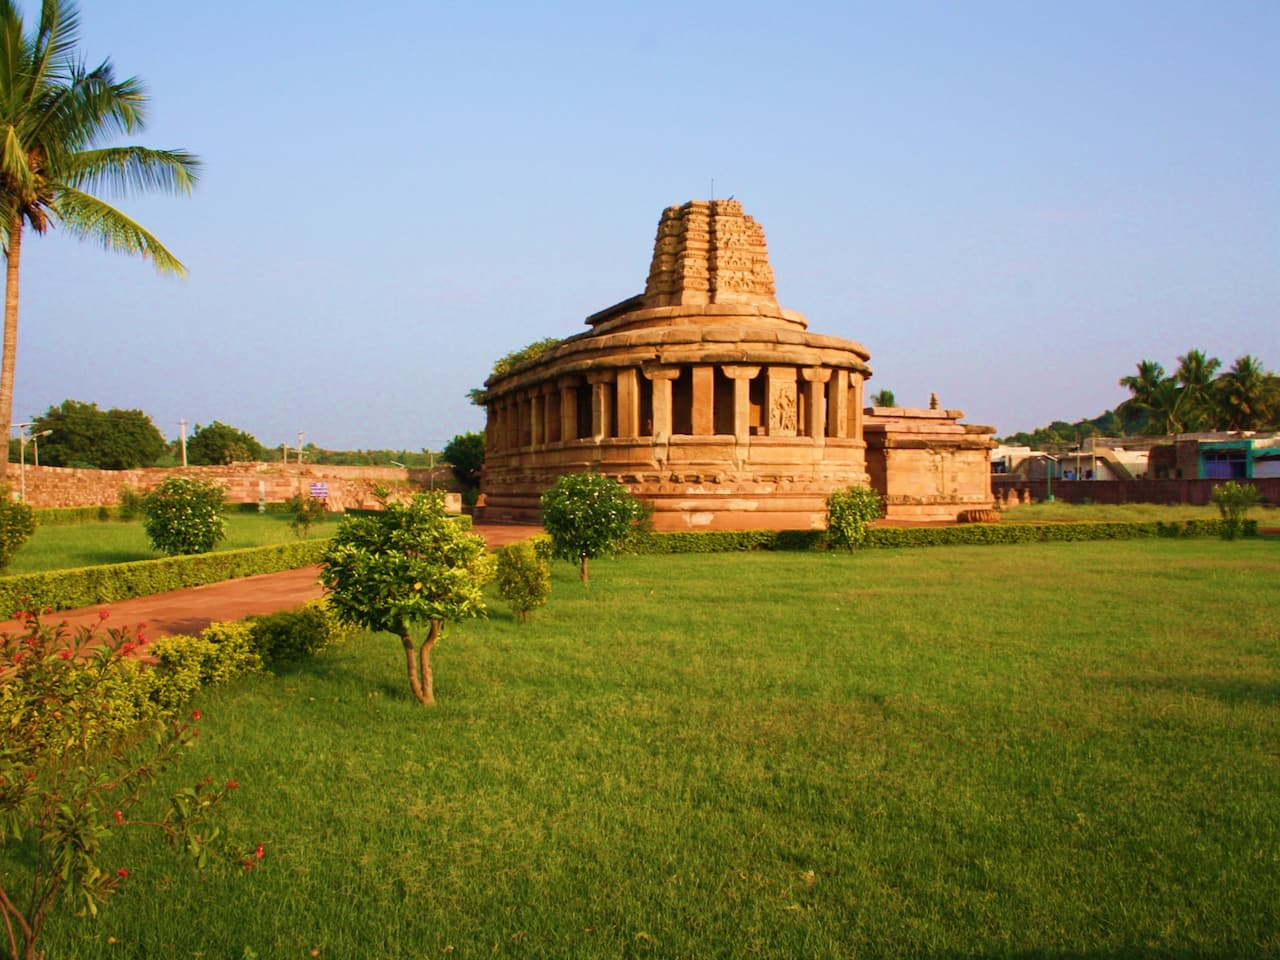 Local Attractions near Hampi - Aihole - Pattadakal